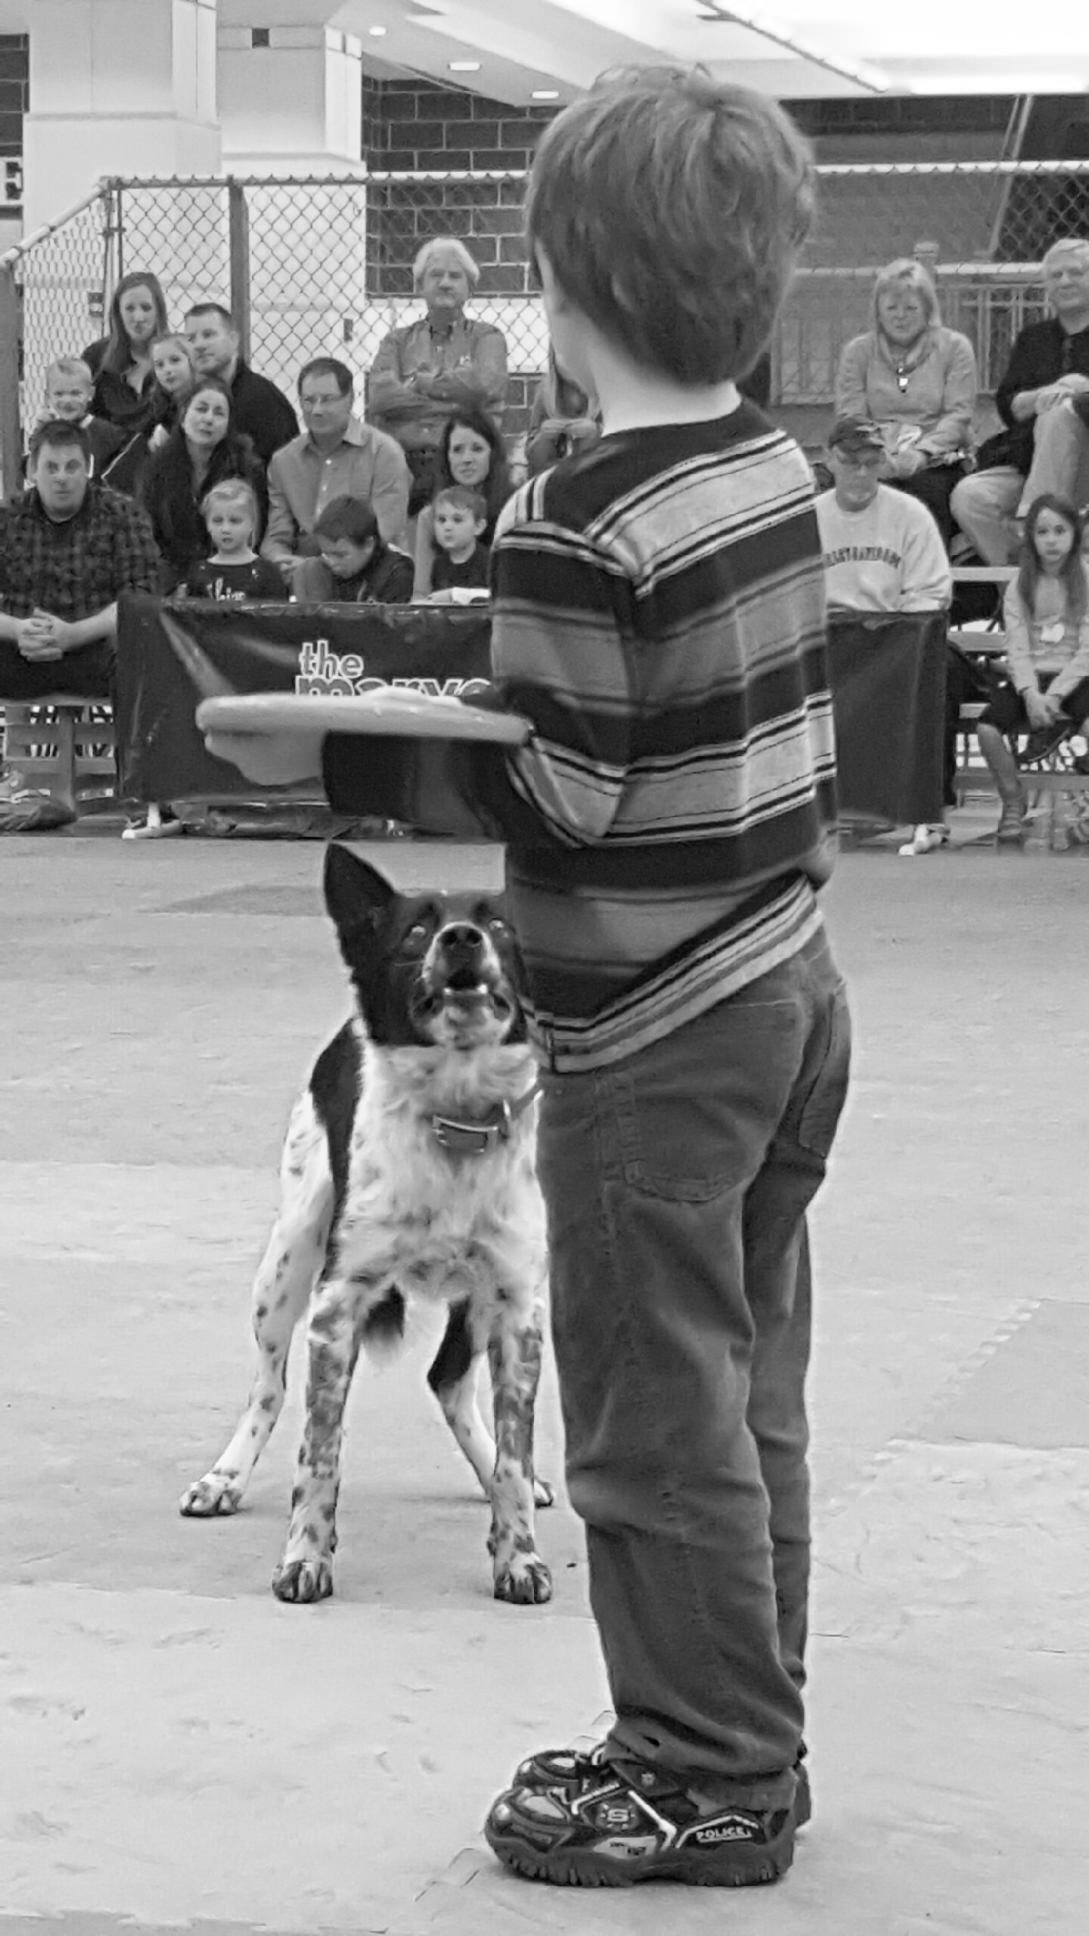 A lucky volunteer gets picked to throw the frisbee for Mucho. Don't worry . . . he looks at everybody like that. ;-